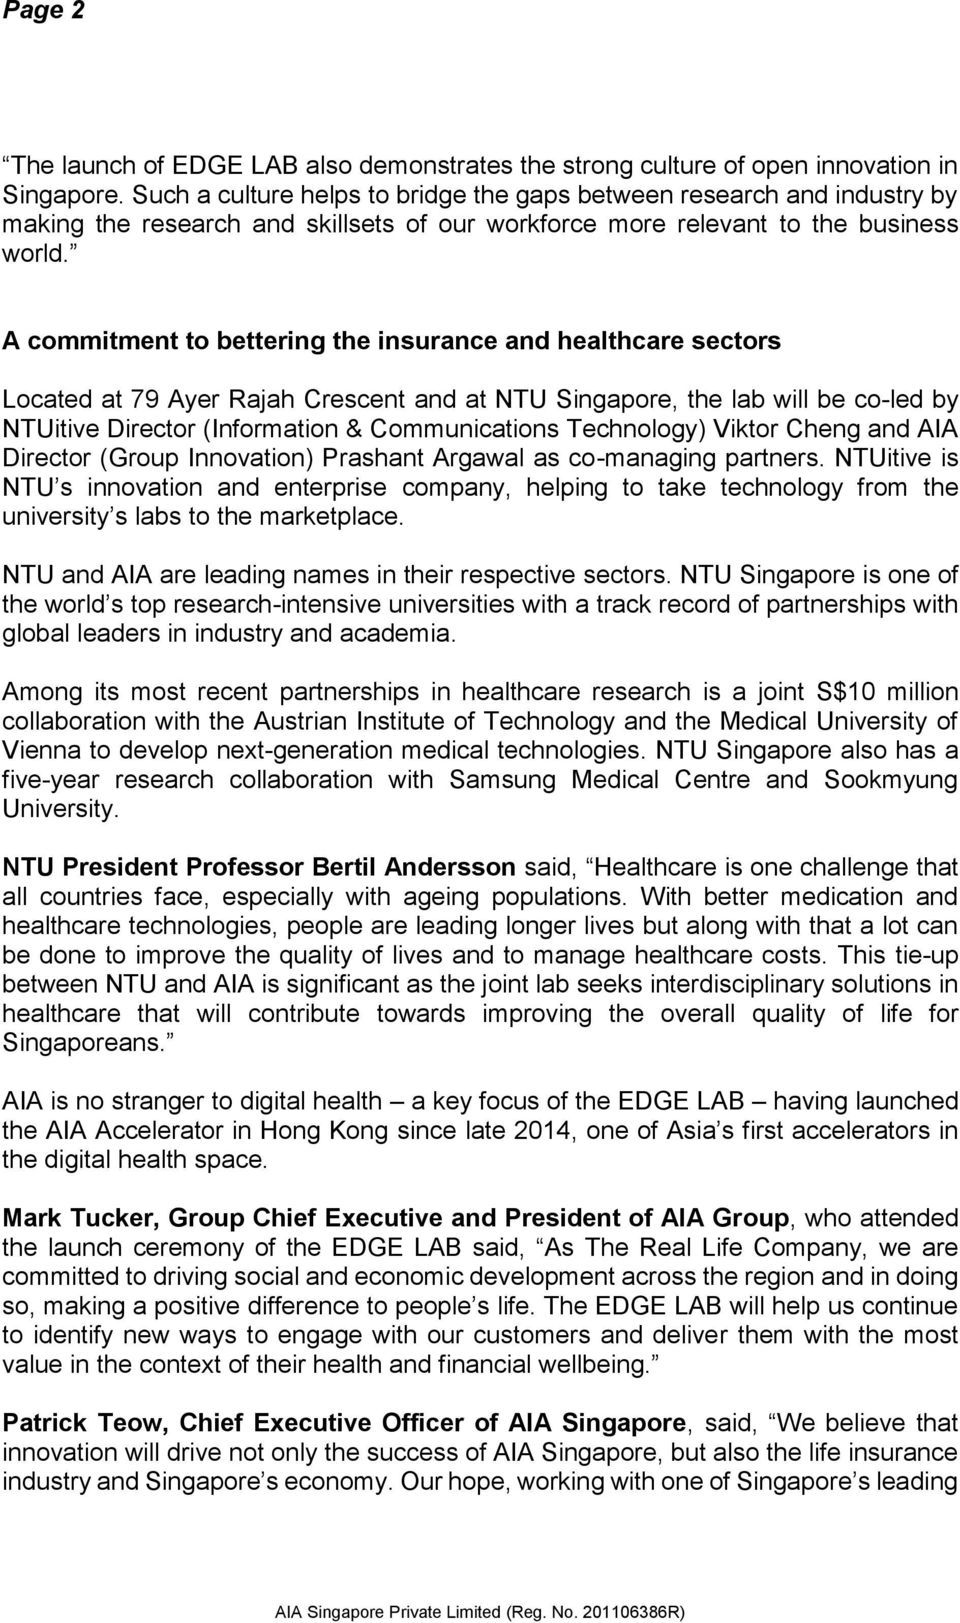 A commitment to bettering the insurance and healthcare sectors Located at 79 Ayer Rajah Crescent and at NTU Singapore, the lab will be co-led by NTUitive Director (Information & Communications